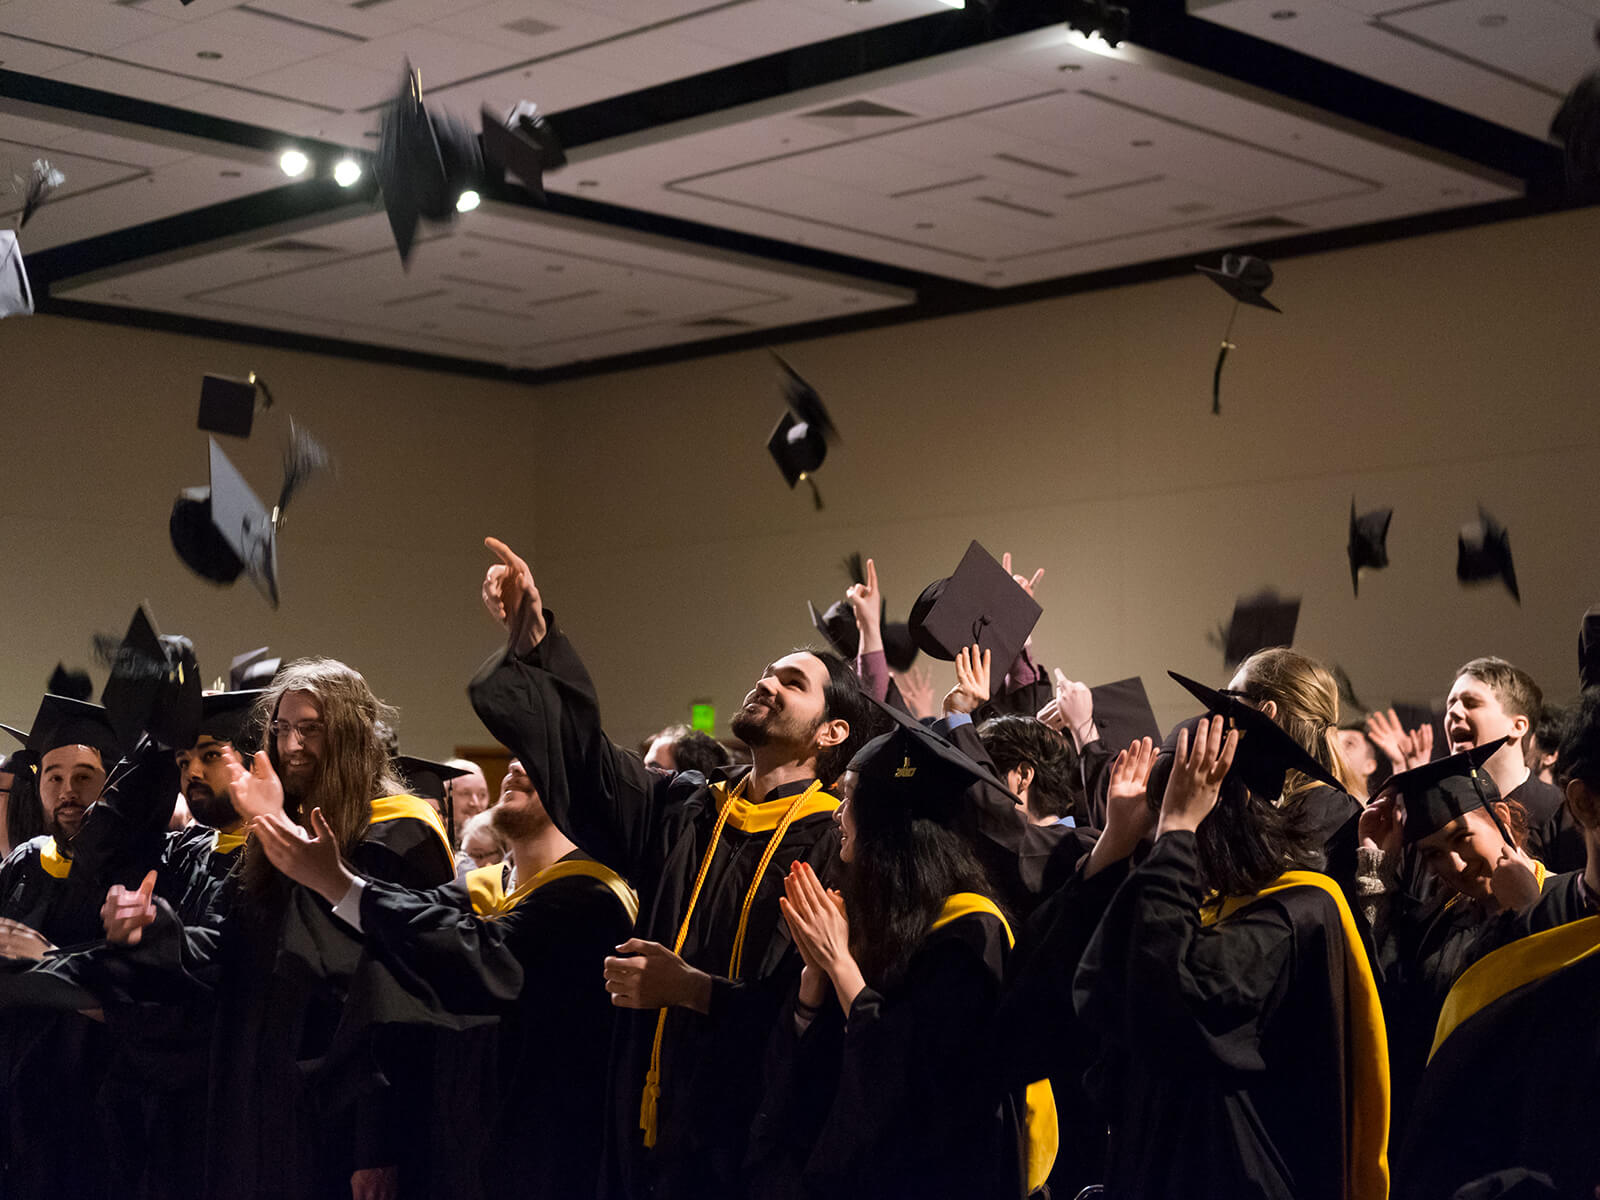 DigiPen 2017 graduates toss their caps in the air